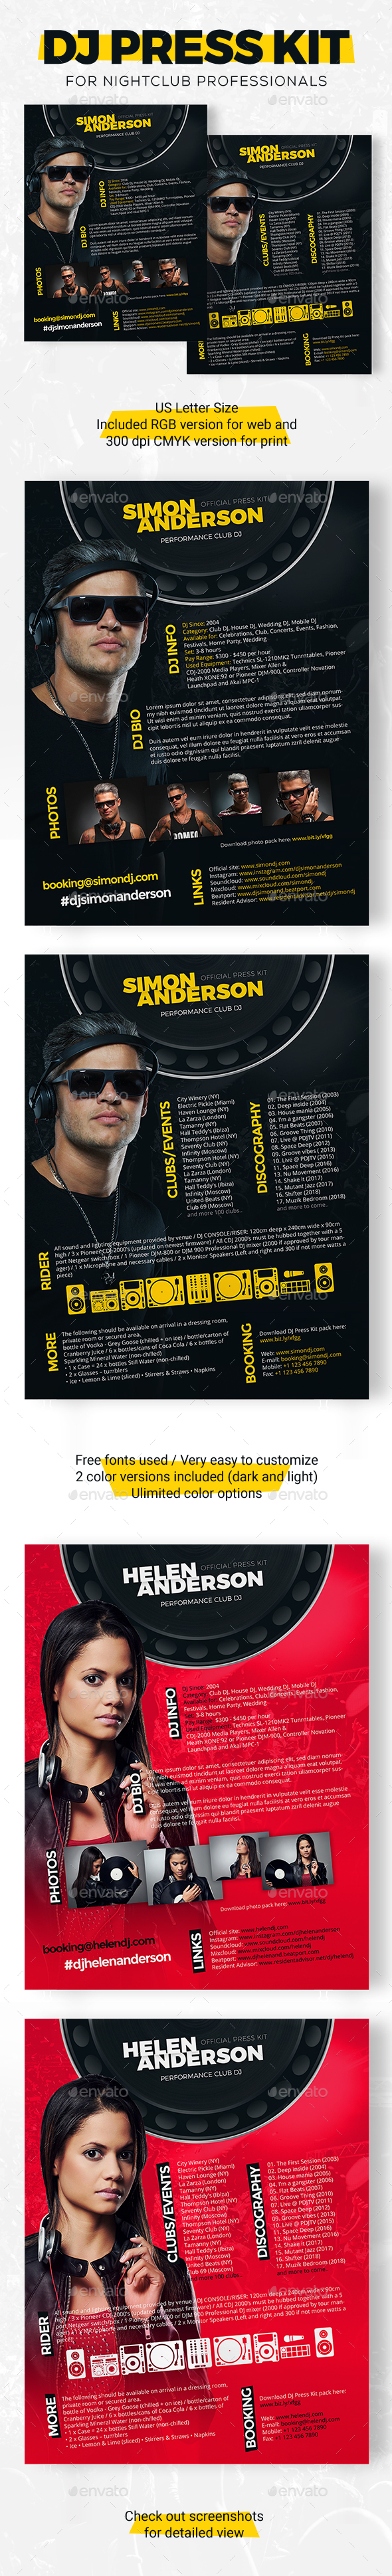 Roll - DJ Press Kit / DJ Resume / DJ Rider PSD Template